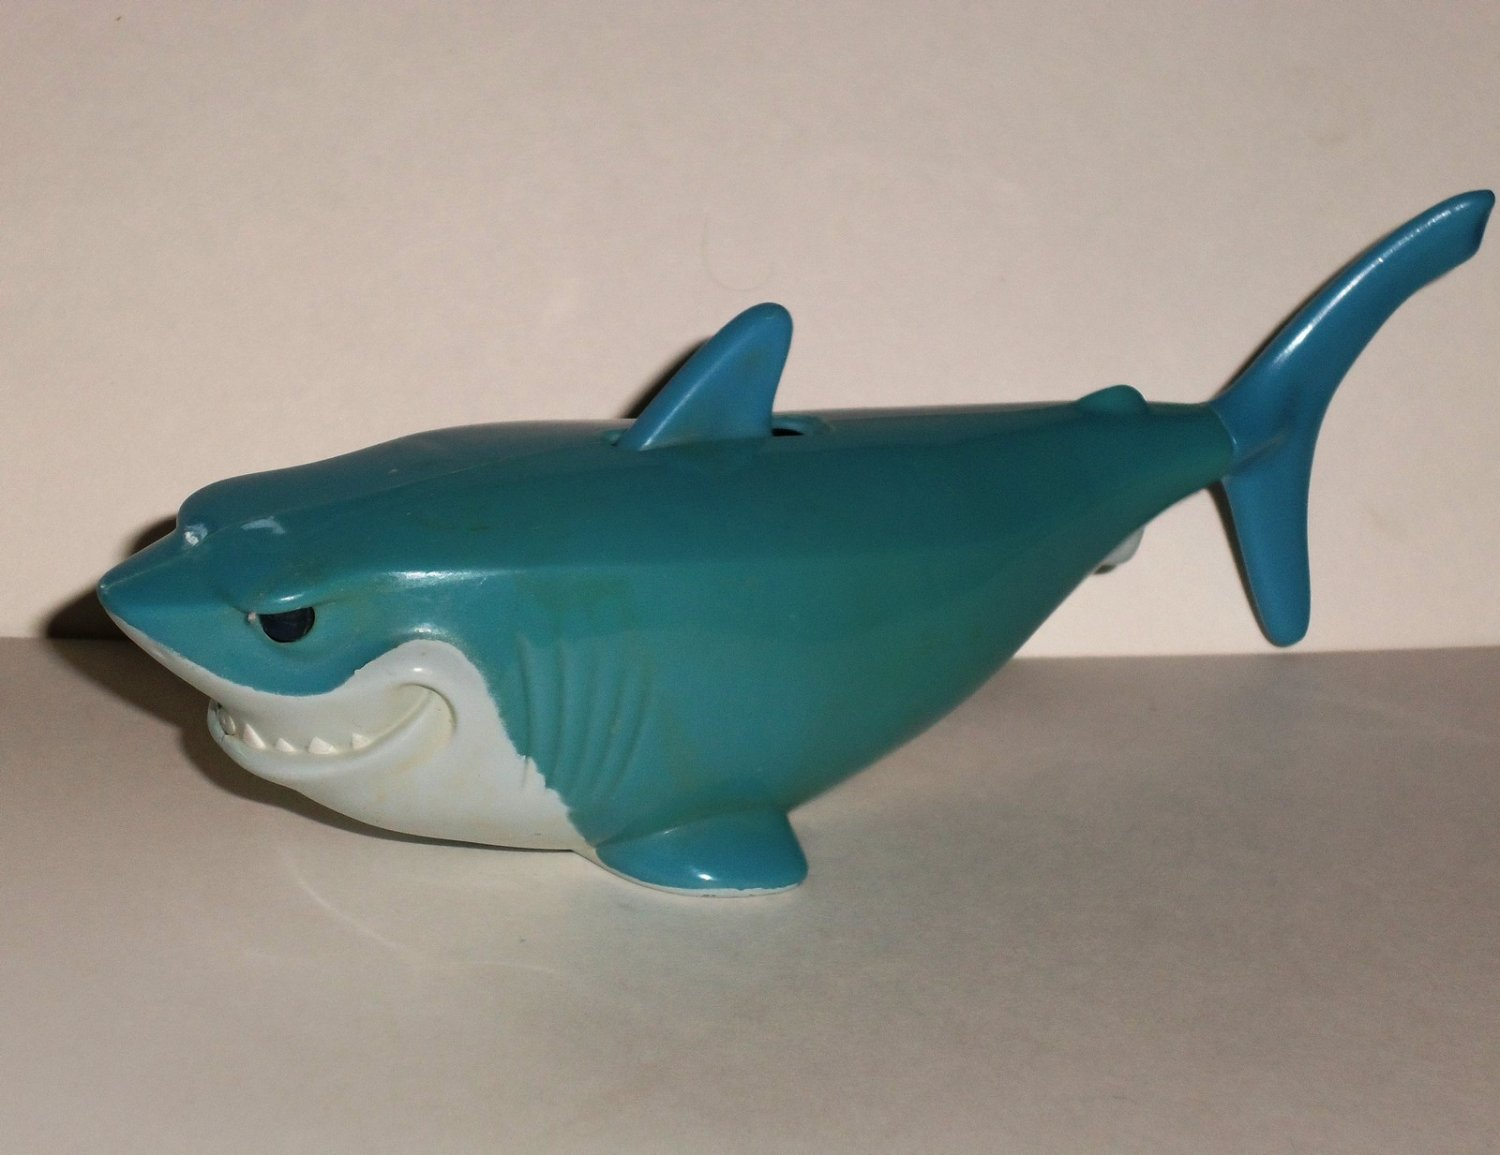 McDonald's 2003 Disney Pixar's Finding Nemo Bruce the Shark Happy Meal Toy Loose Used Does Not Work